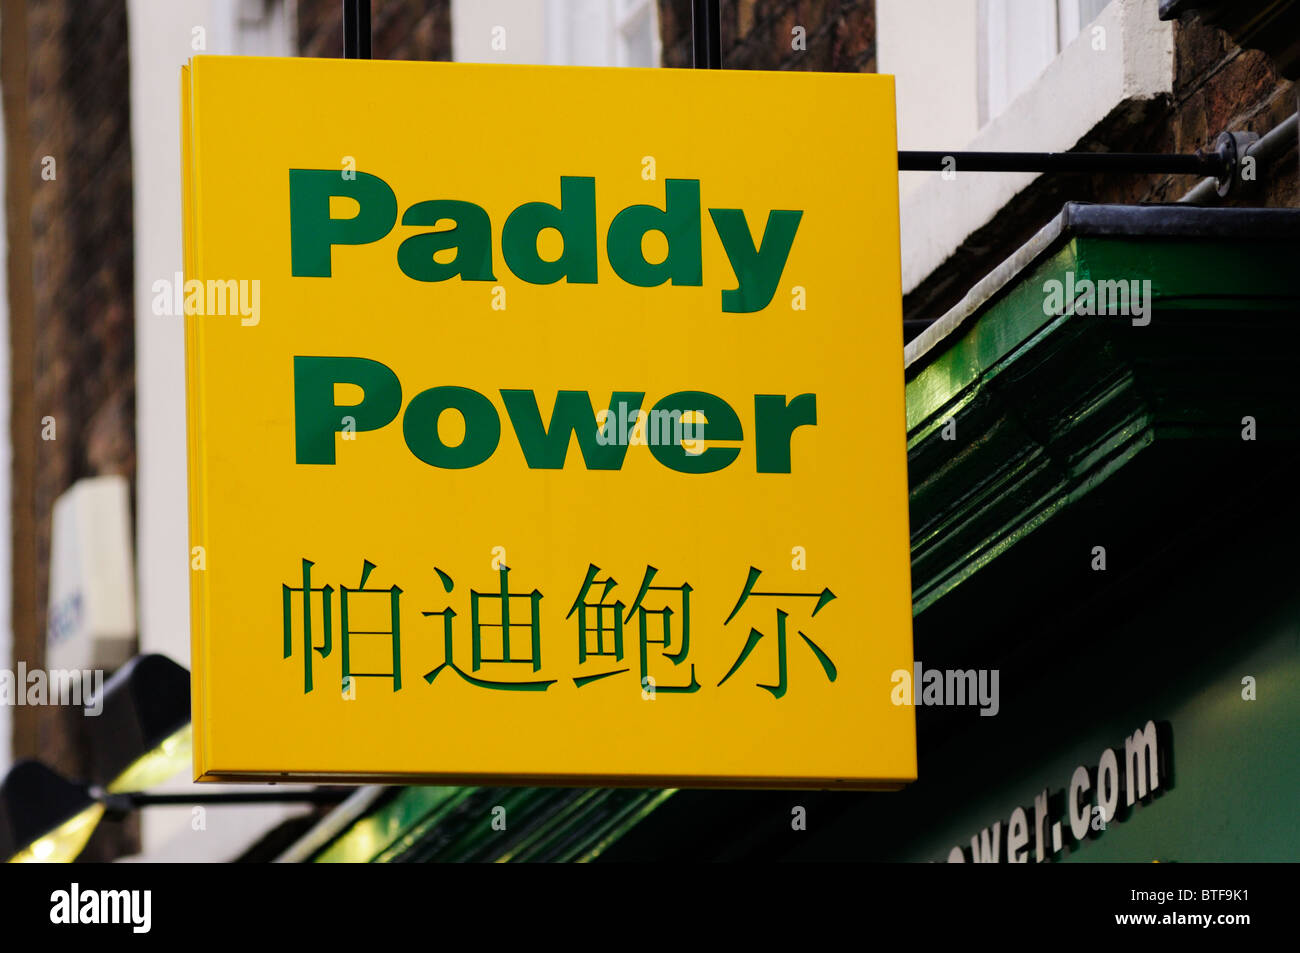 Bilingual Paddy Power Bookmaker sign, Gerrard Street, Chinatown, London, England, UK - Stock Image